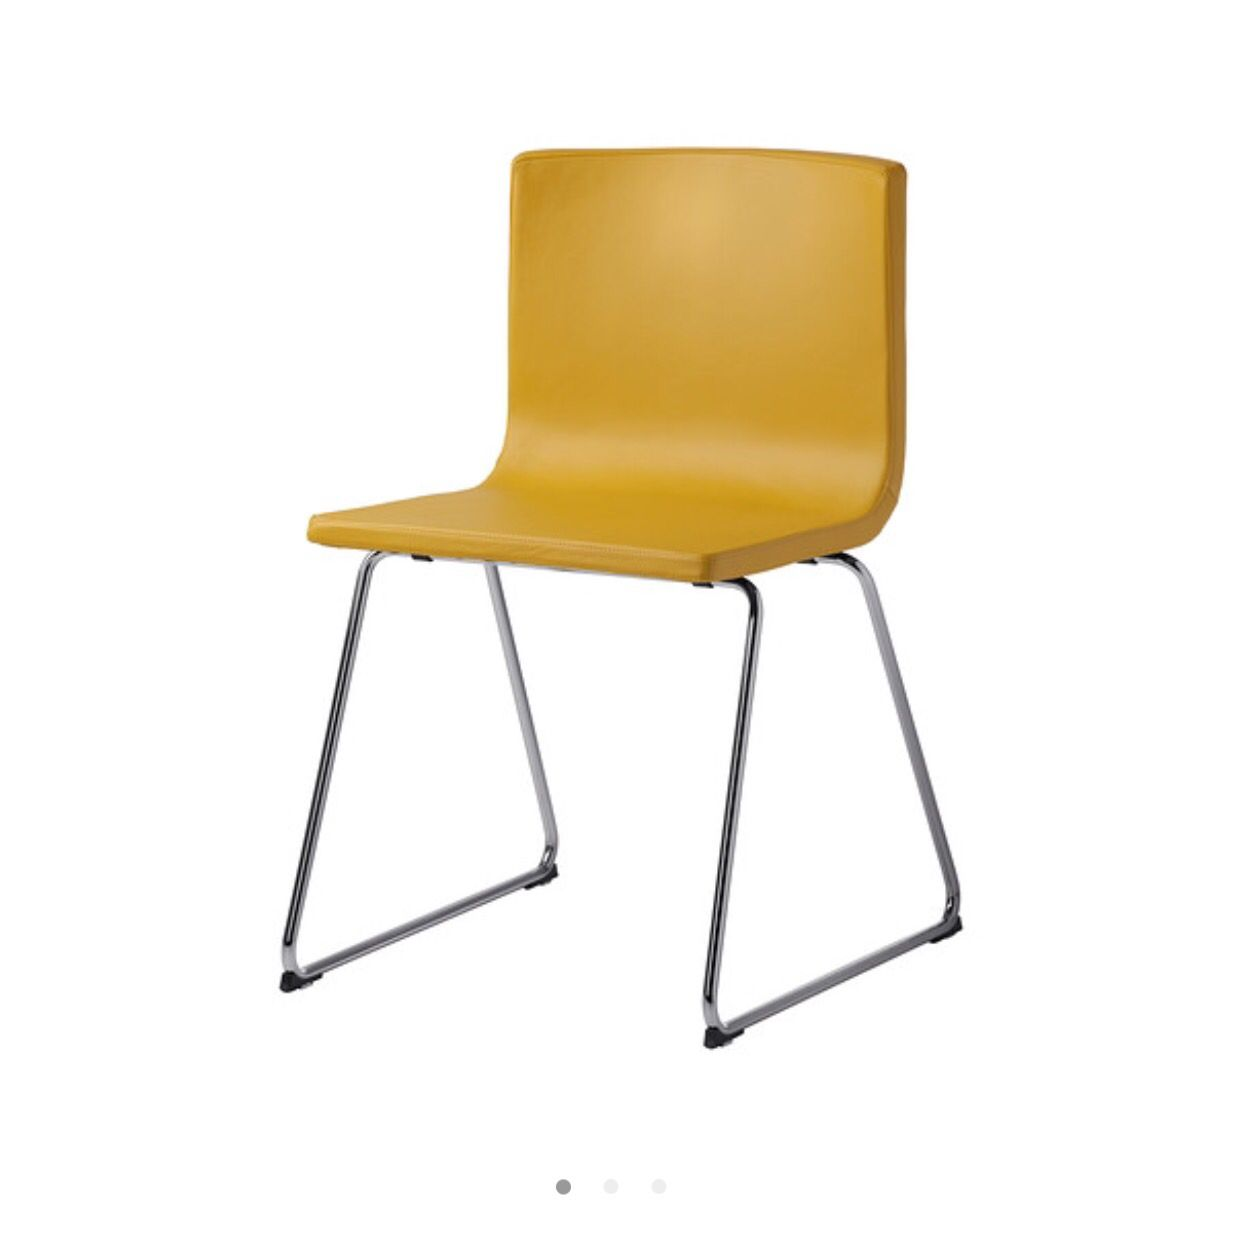 Yellow leather dining chair £100 Ikea  sc 1 st  Pinterest : leather dining chairs ikea - Cheerinfomania.Com